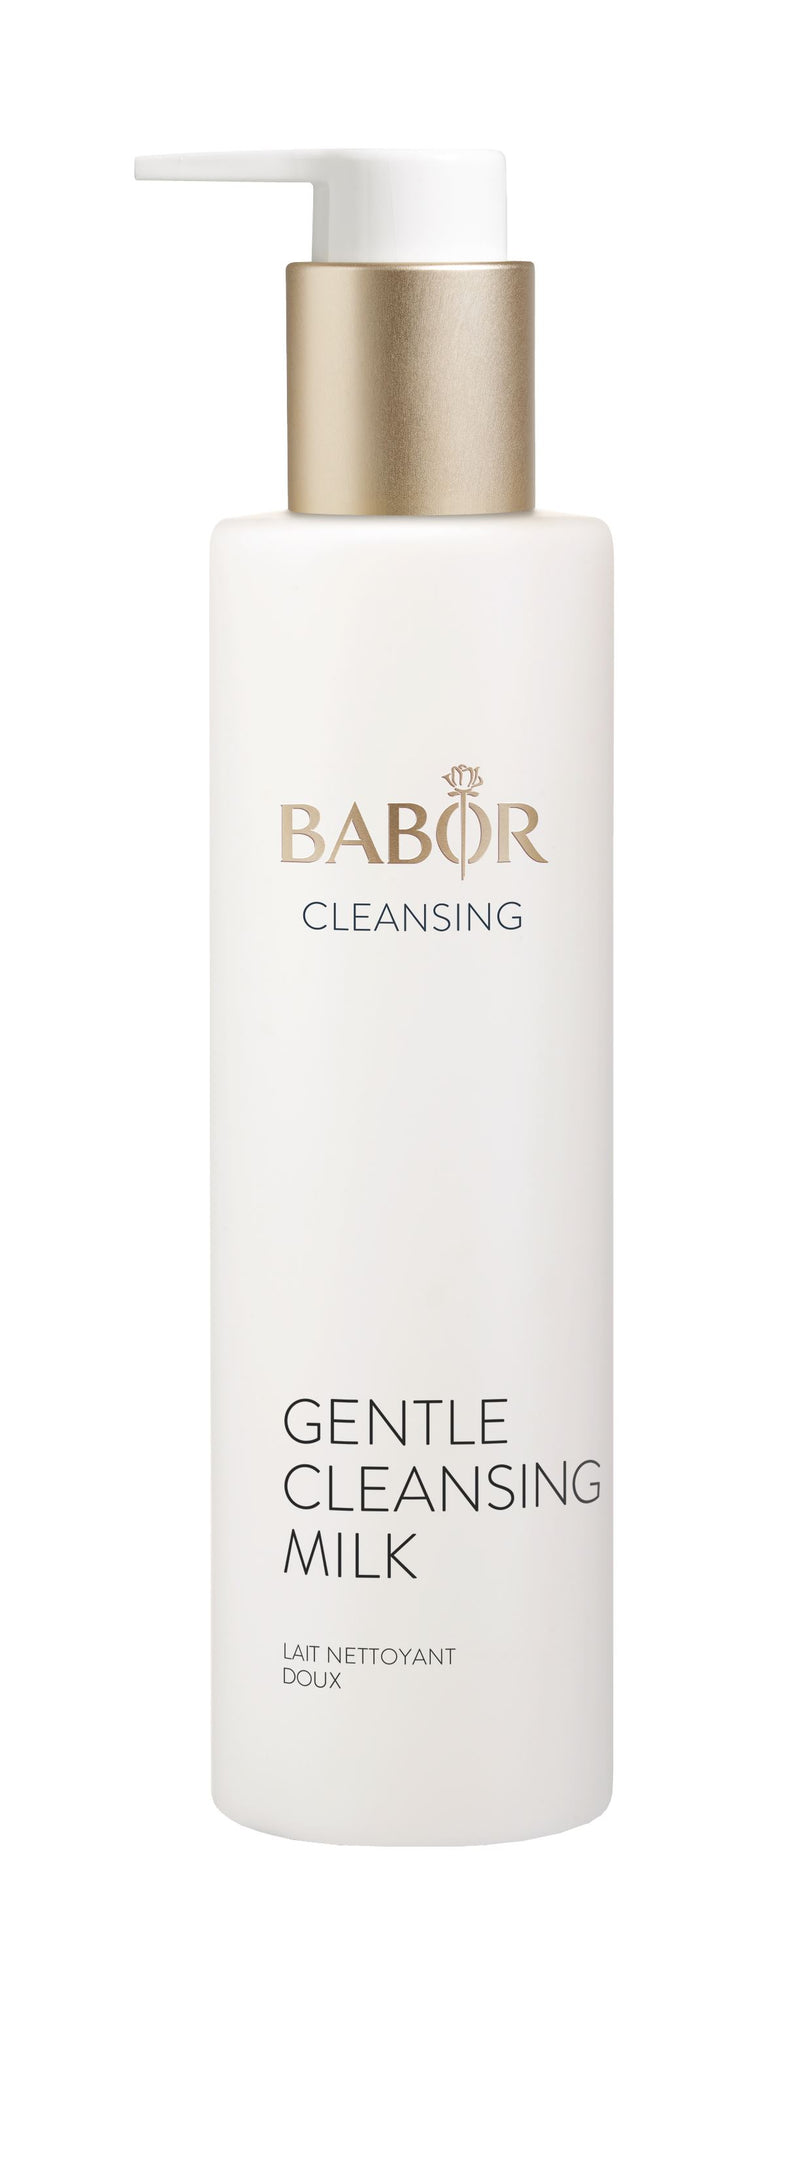 BABOR GENTLE CLEANSING MILK Cleanser Babor